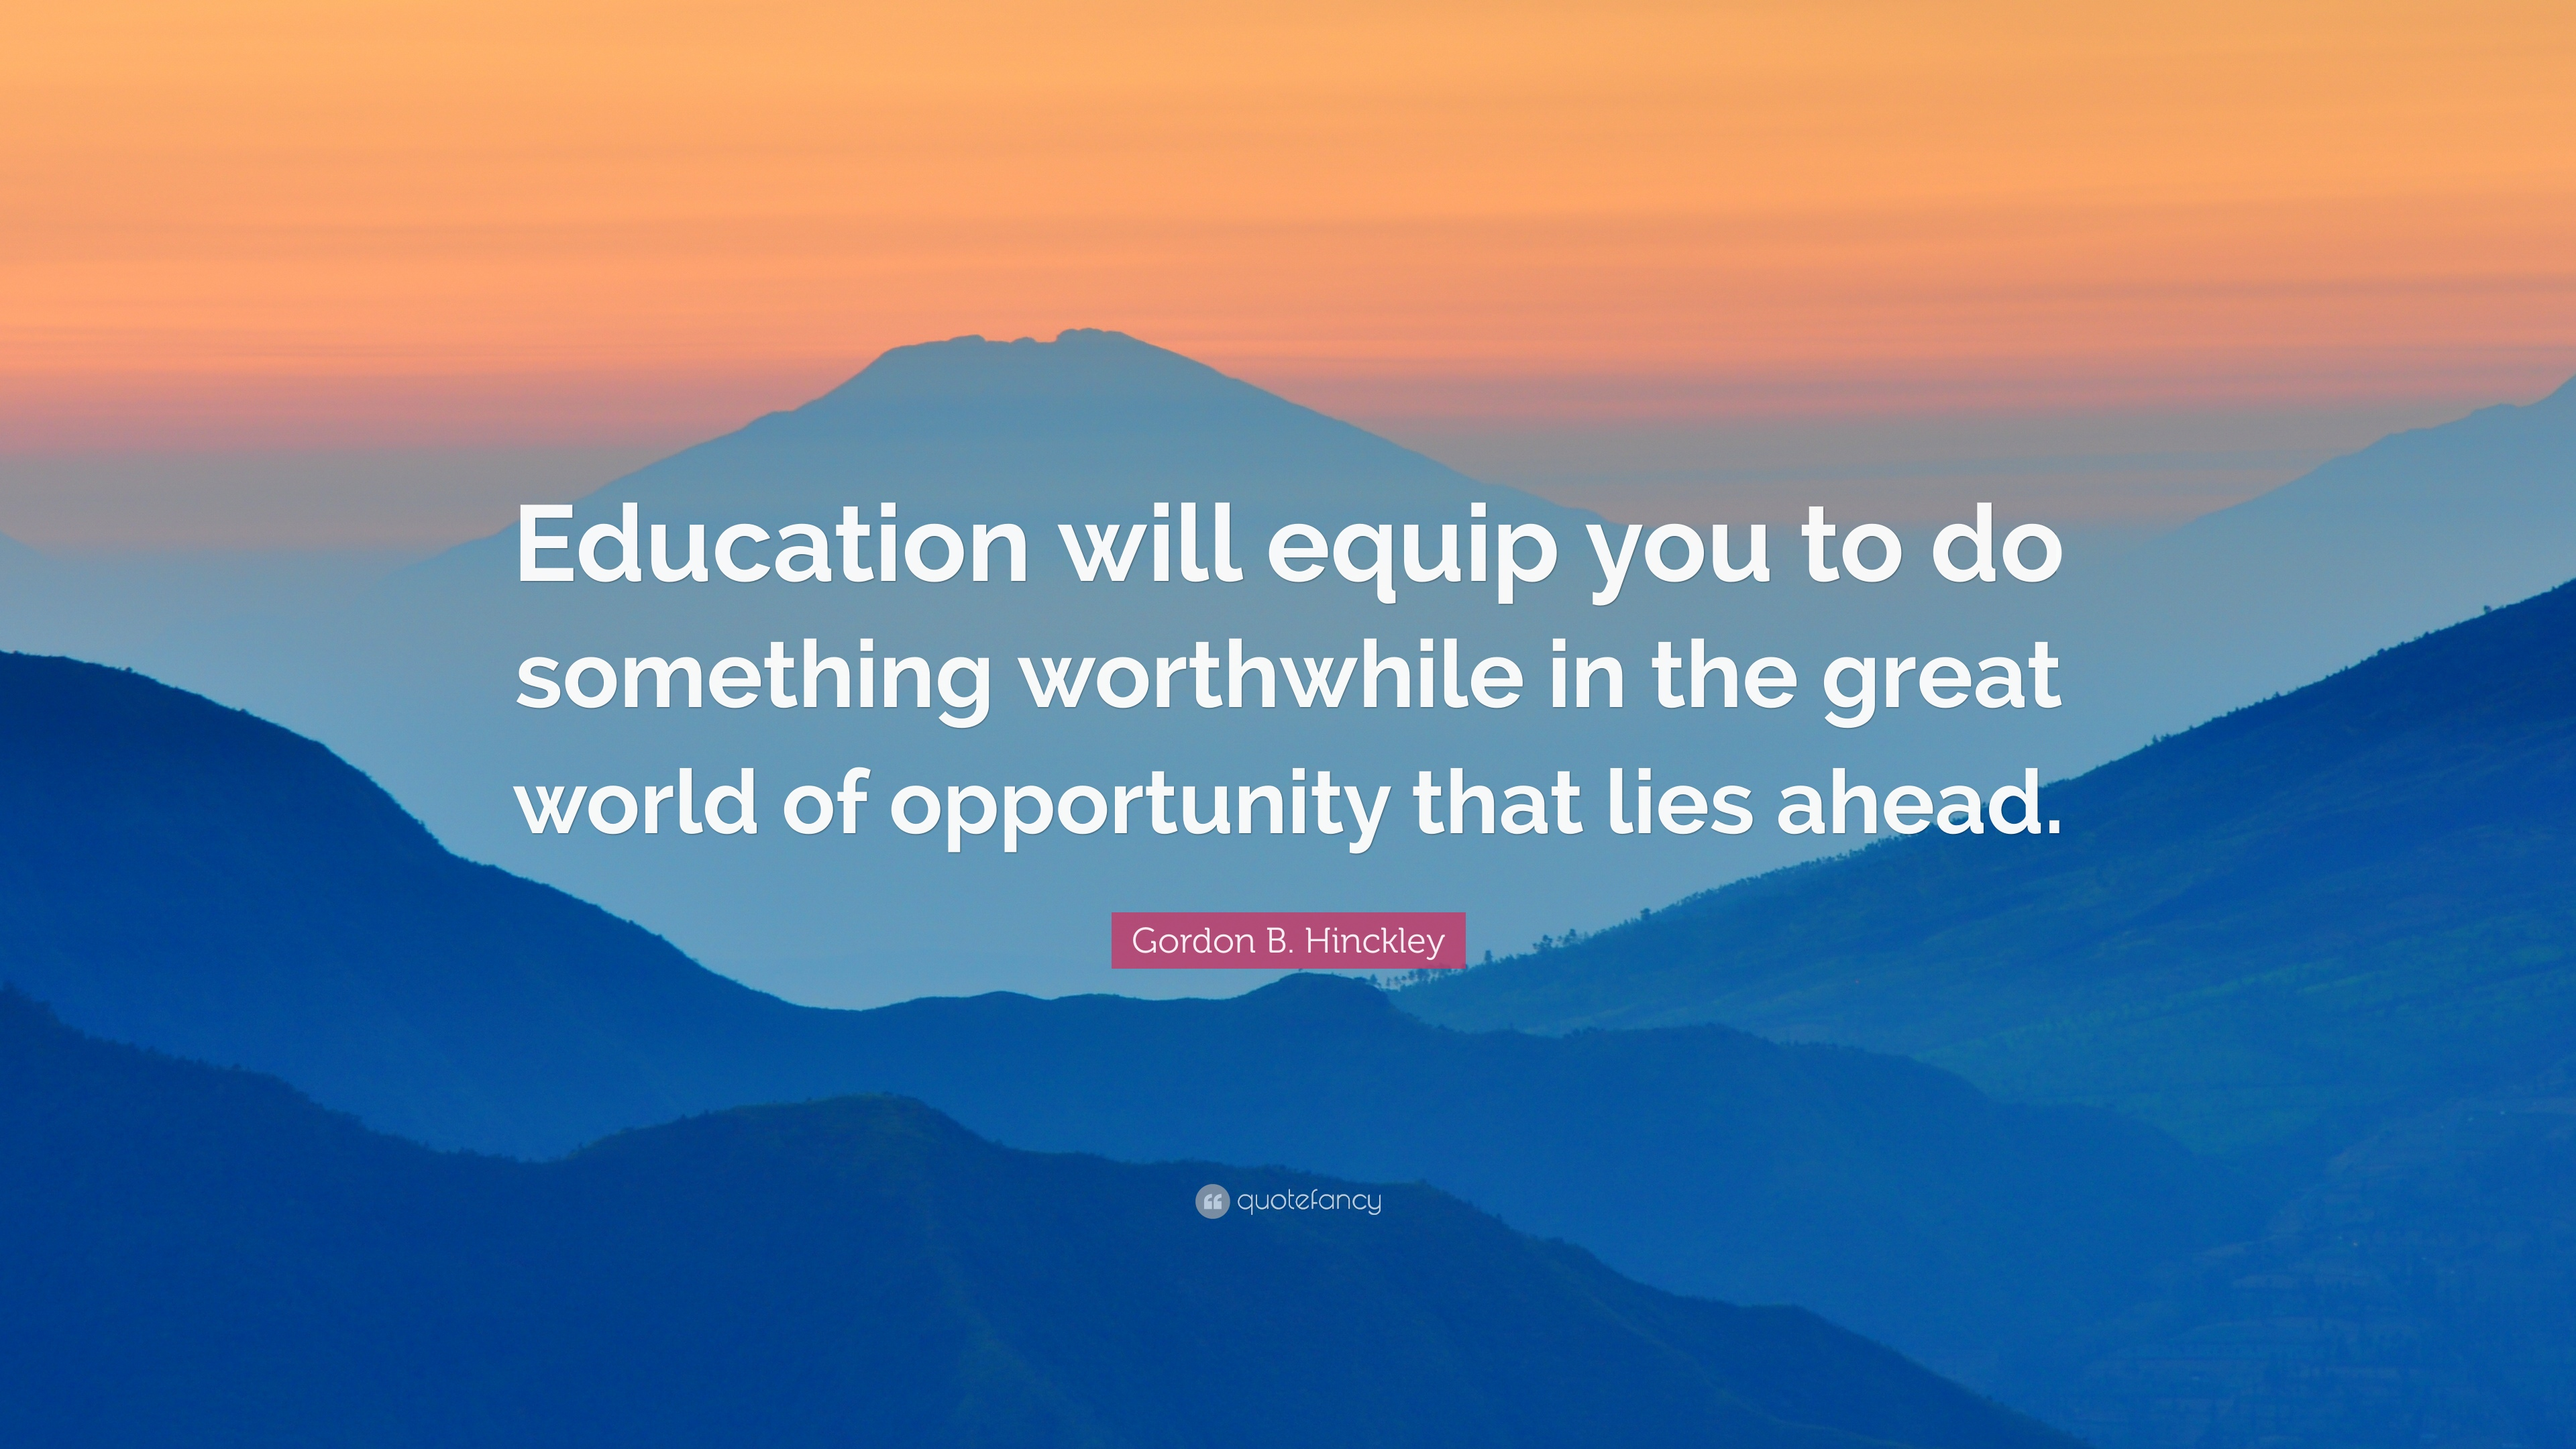 Gordon B Hinckley Quote Education Will Equip You To Do Something Worthwhile In The Great World Of Opportunity That Lies Ahead 7 Wallpapers Quotefancy